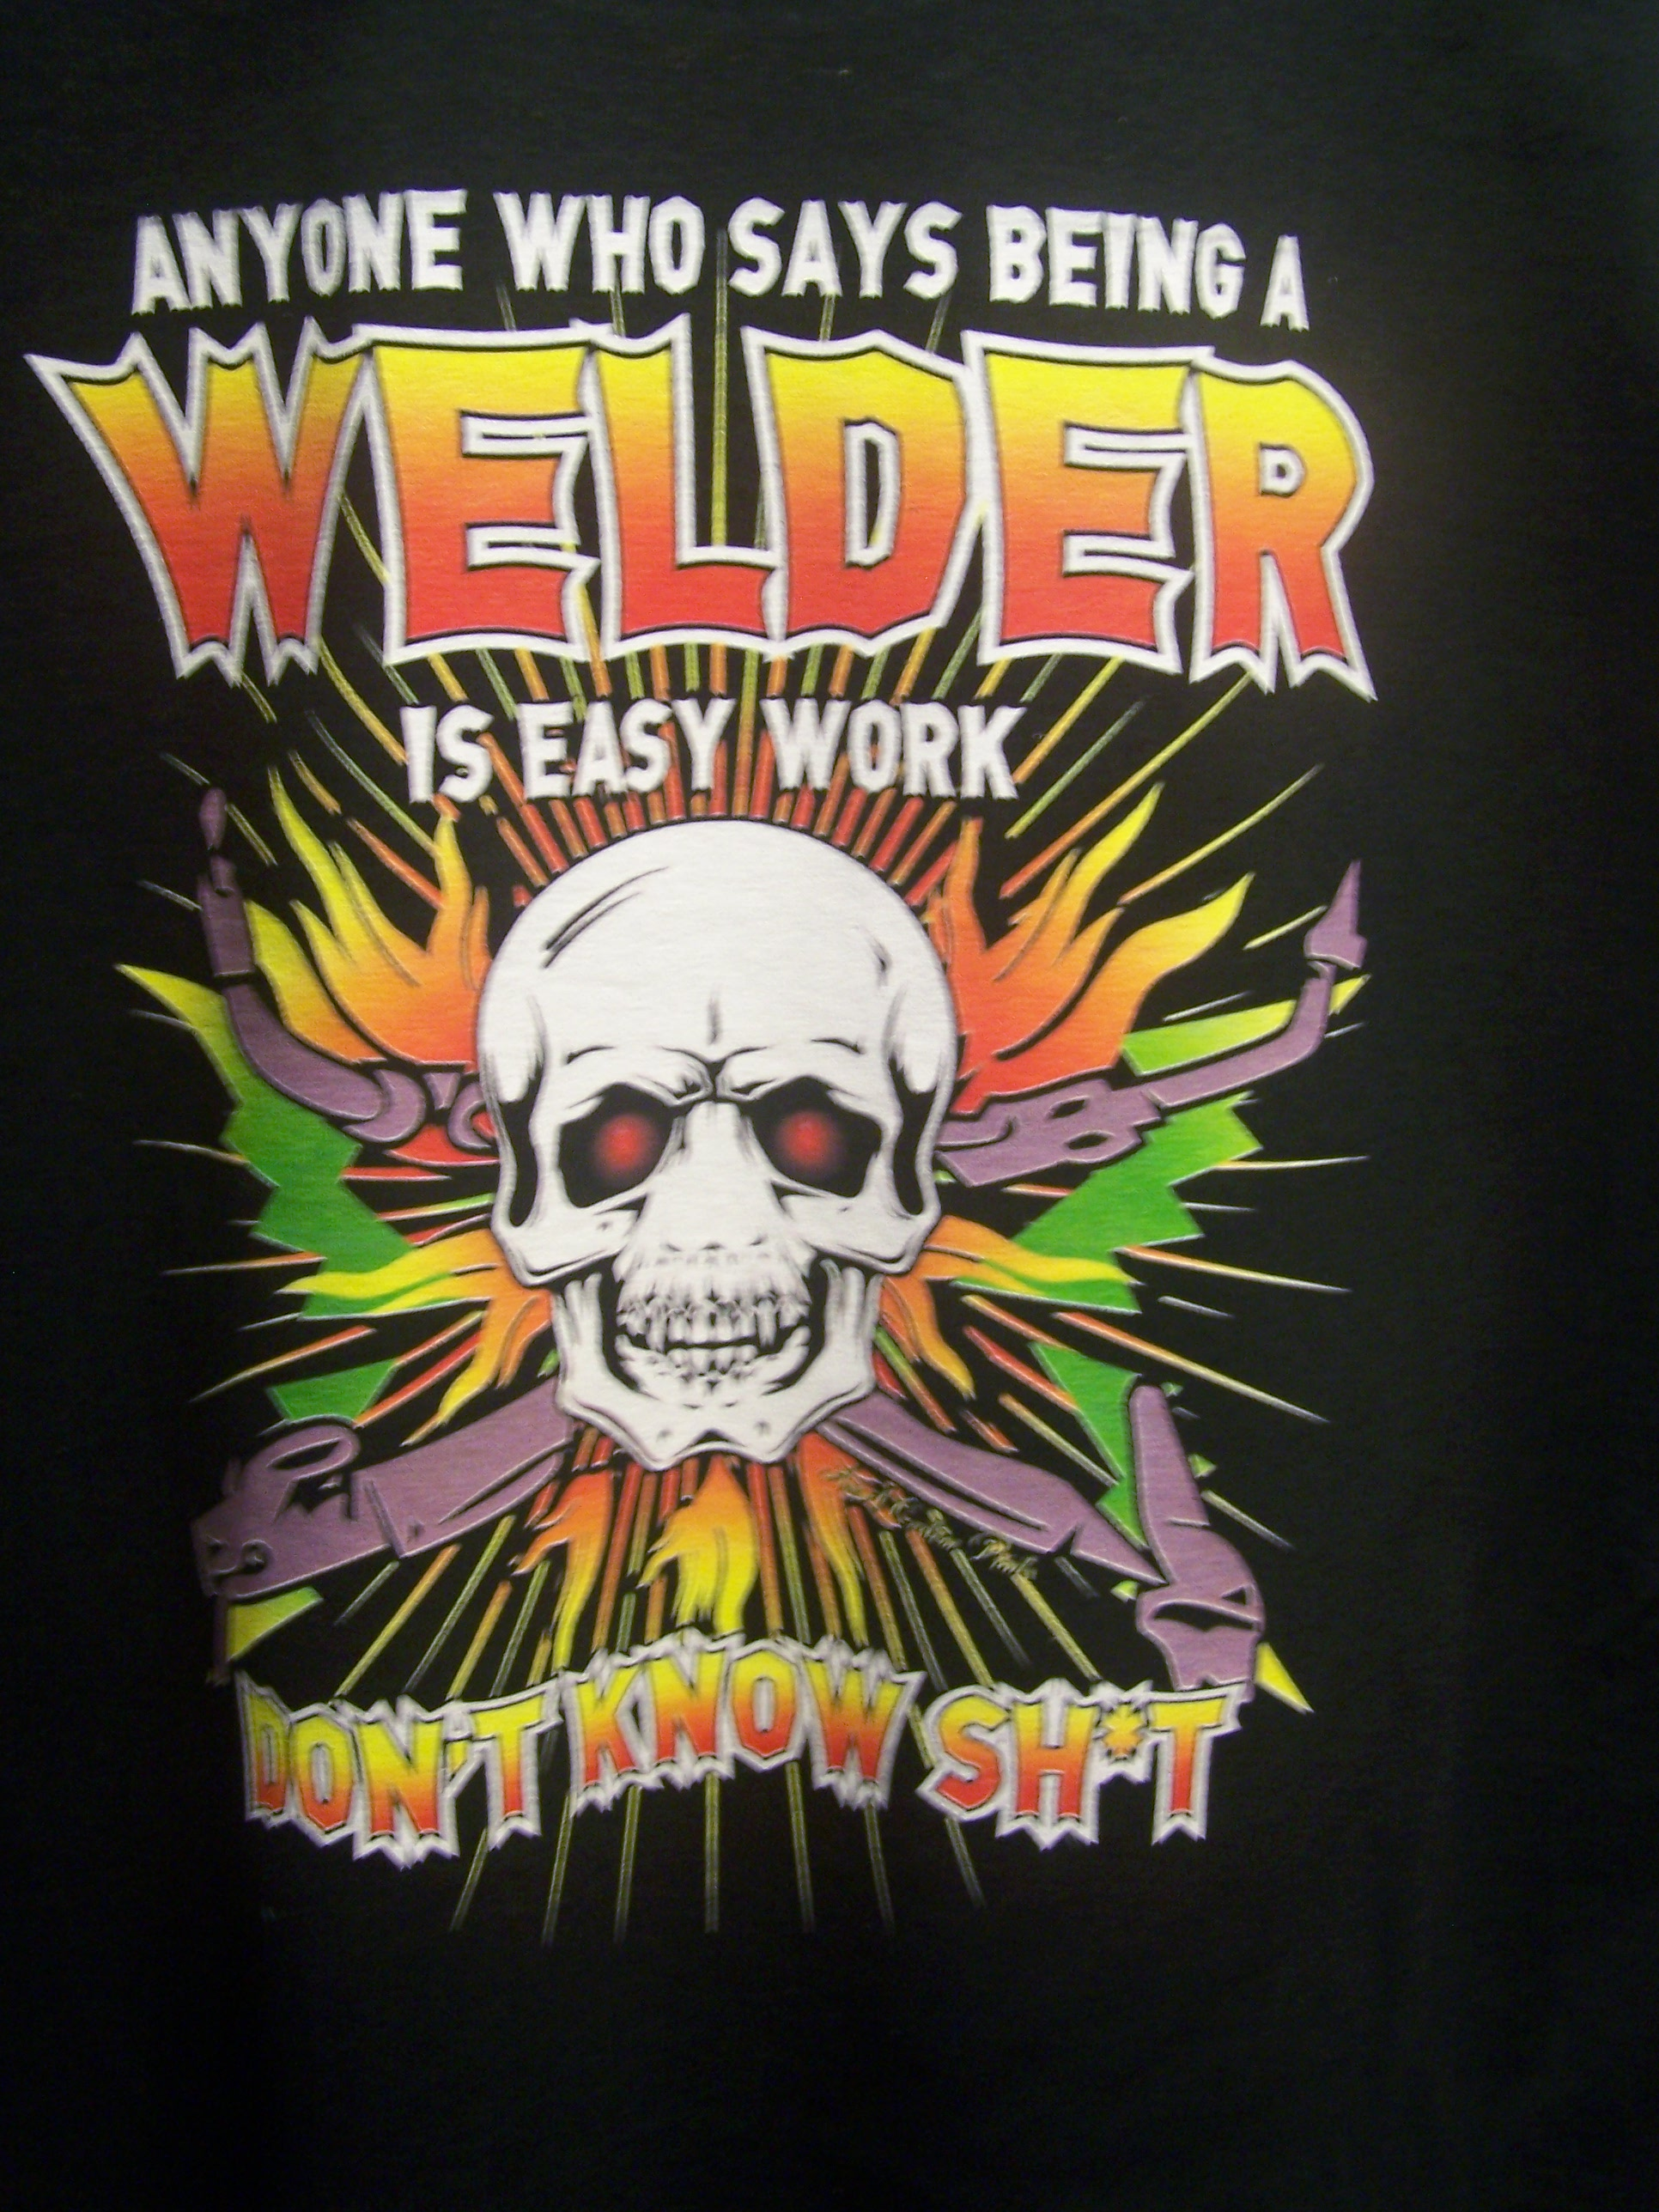 Welder Isn't Easy Work